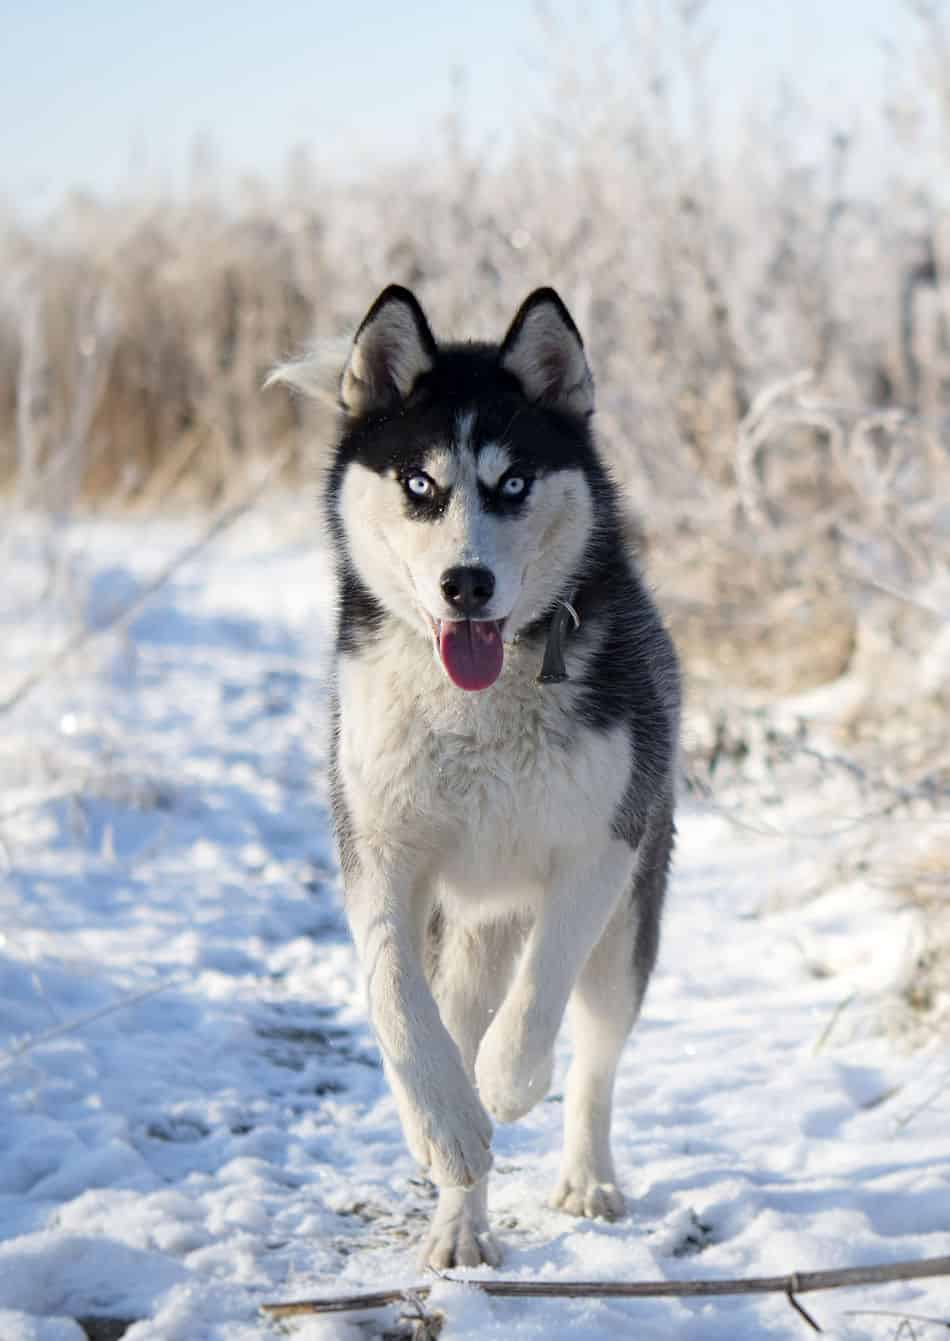 Can Huskies Stay Outside in the Cold?